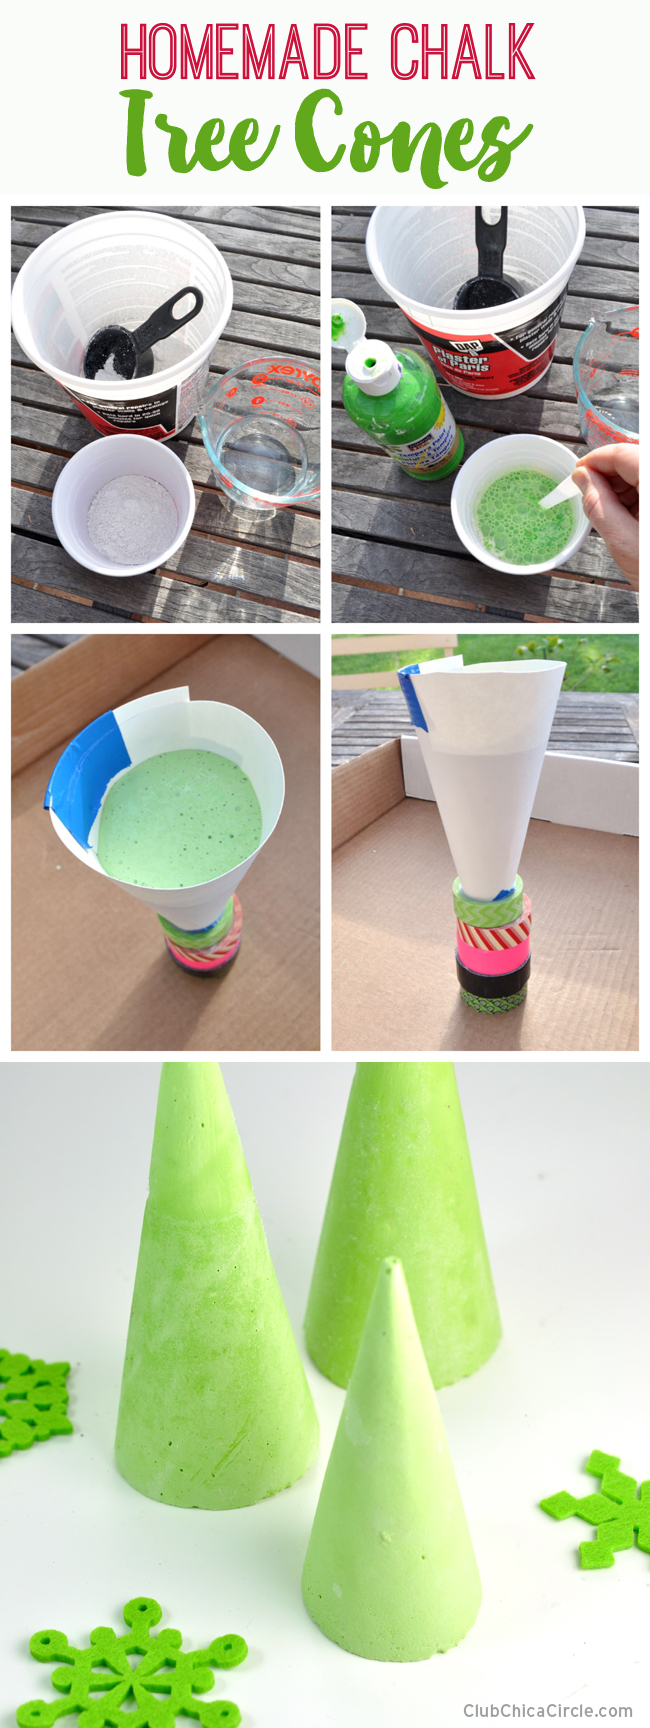 how-to-make-tree-shaped-colored-homemade-chalk-decorations-for-the-holidays